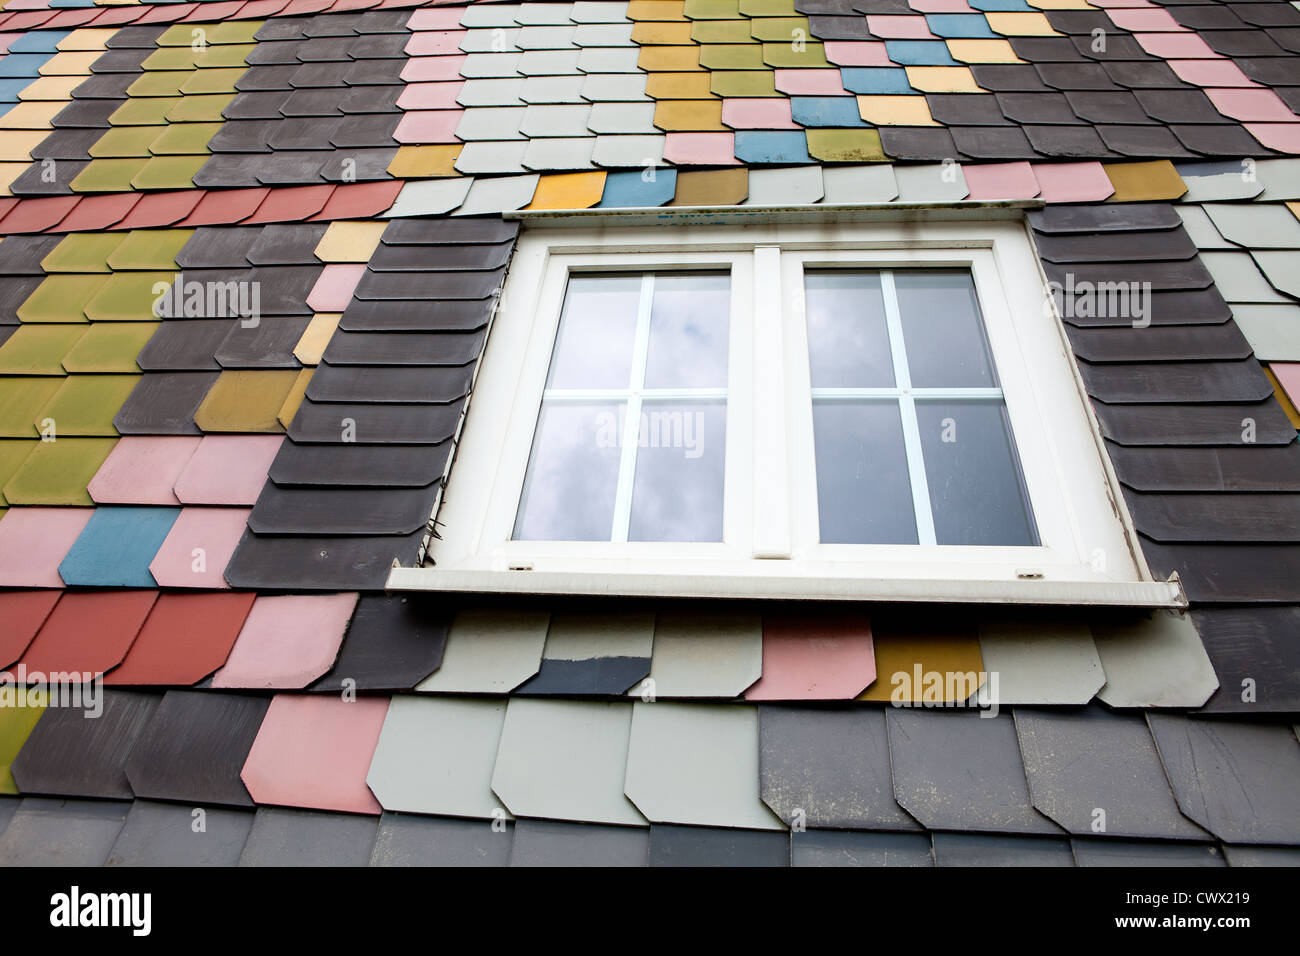 Fibre Cement Board Cladding : Cladding with coloured fibre cement boards like slate on